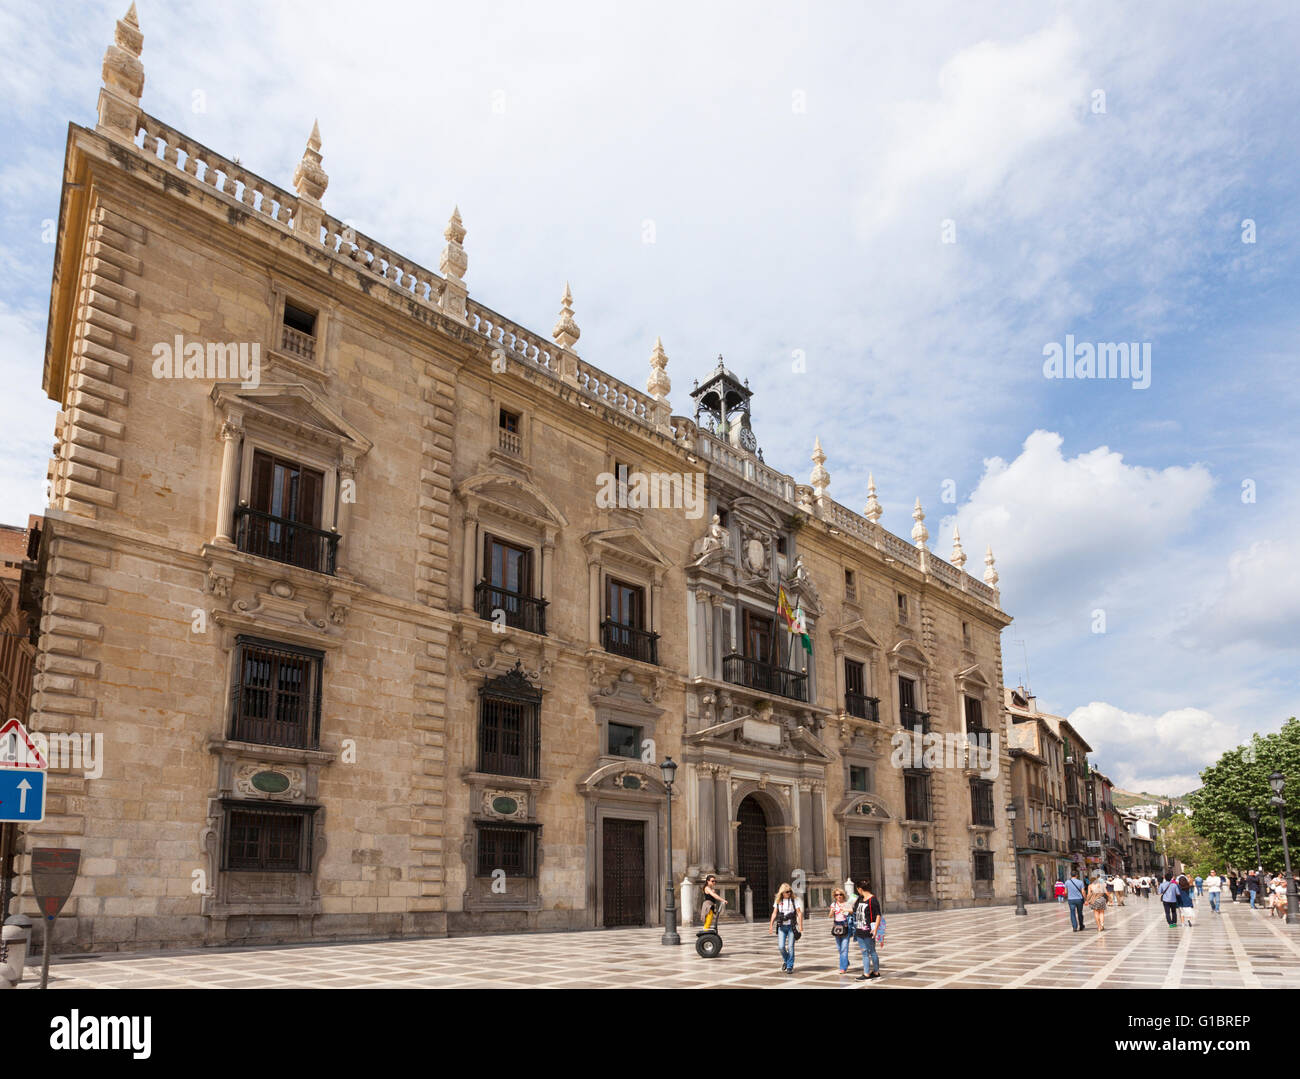 Palacio de la Chancilleria at Santa Ana square, seat of the royal chancery from 1537-1834, tourists passing by - Stock Image